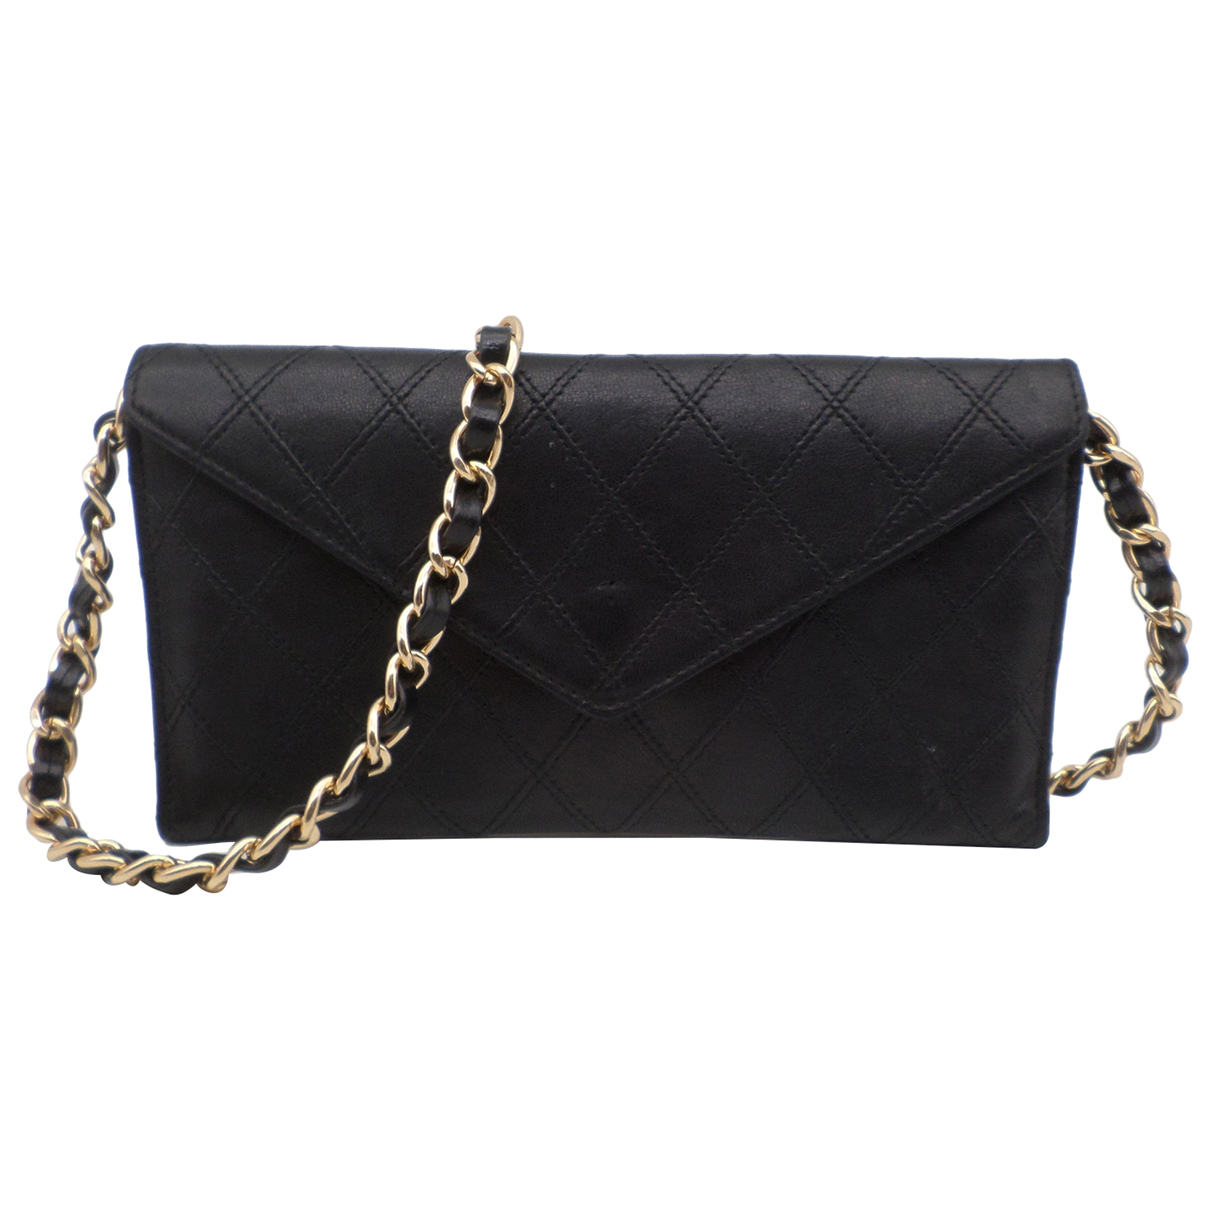 Chanel - Sac a main Wallet on Chain pour femme en cuir - noir